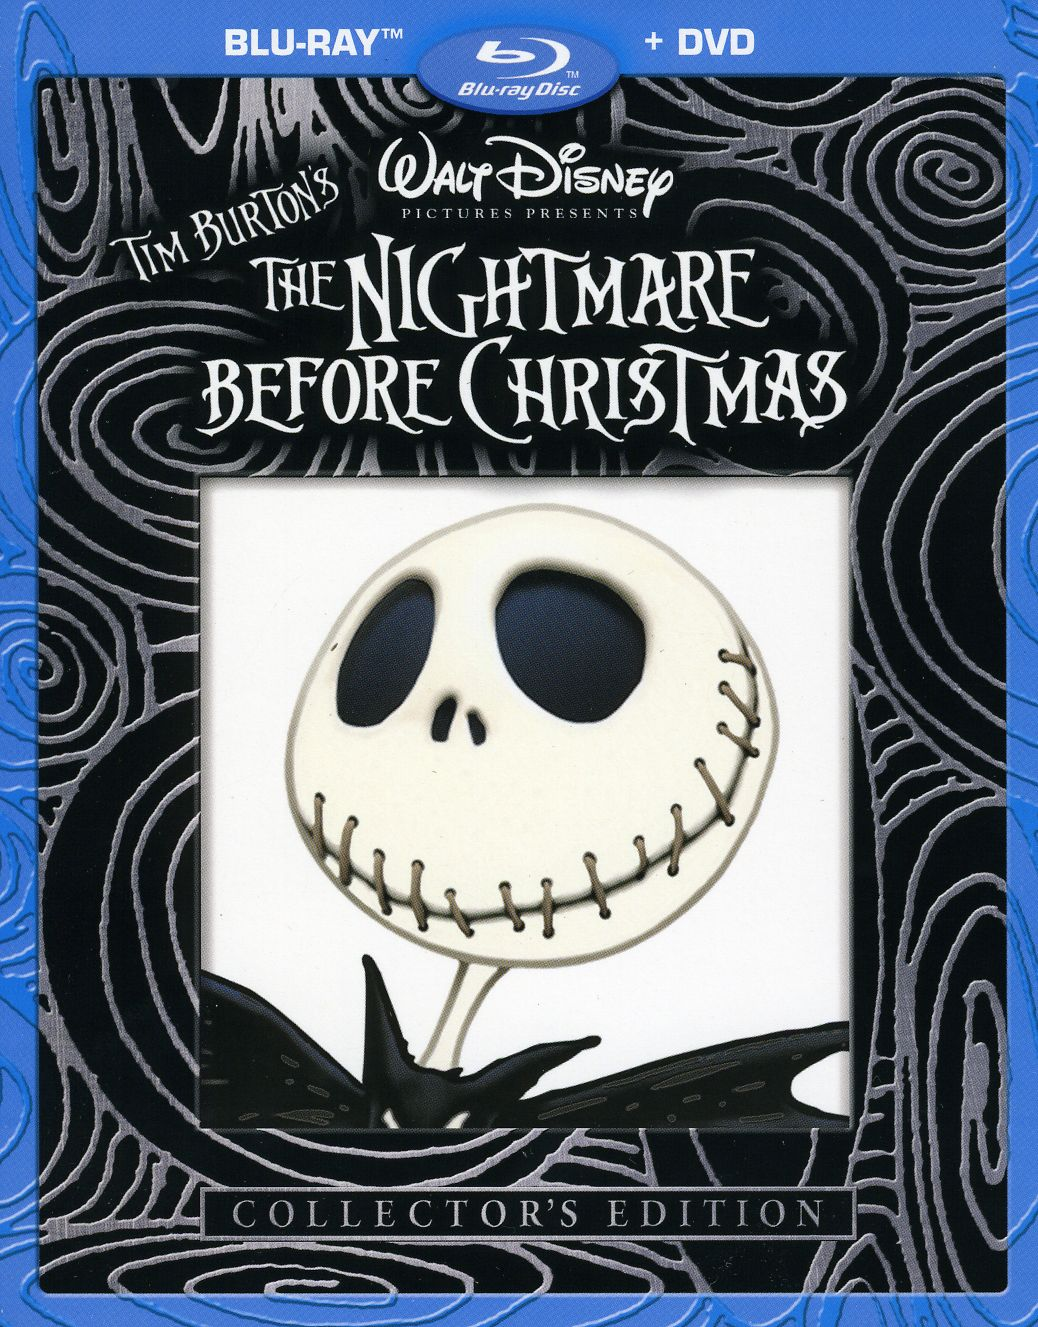 The Nightmare Before Christmas (Collector's Edition) (Blu-ray/DVD)